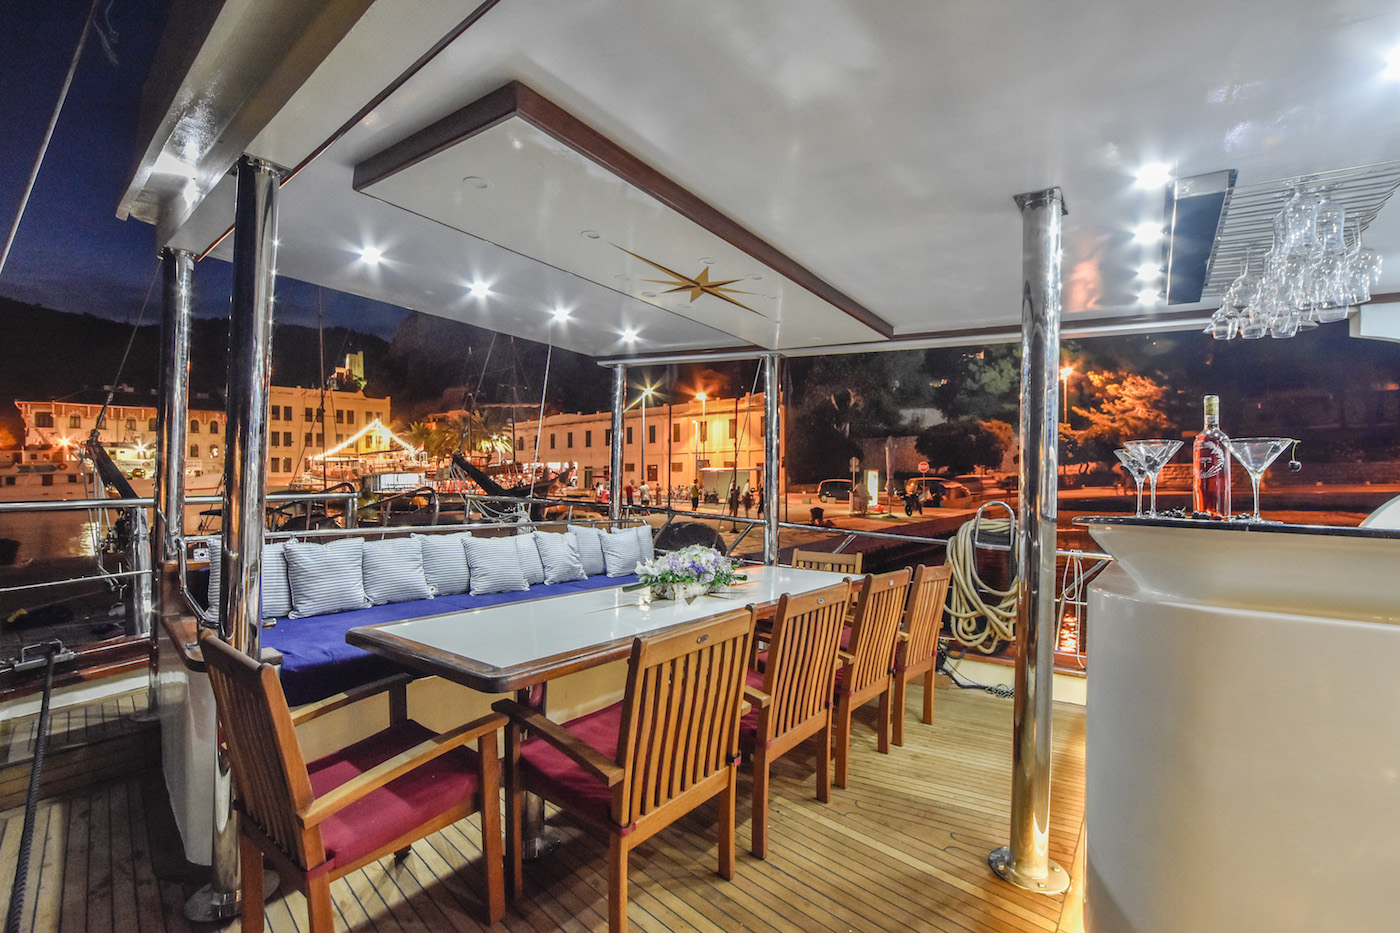 Alfresco dining options for warm summer nights